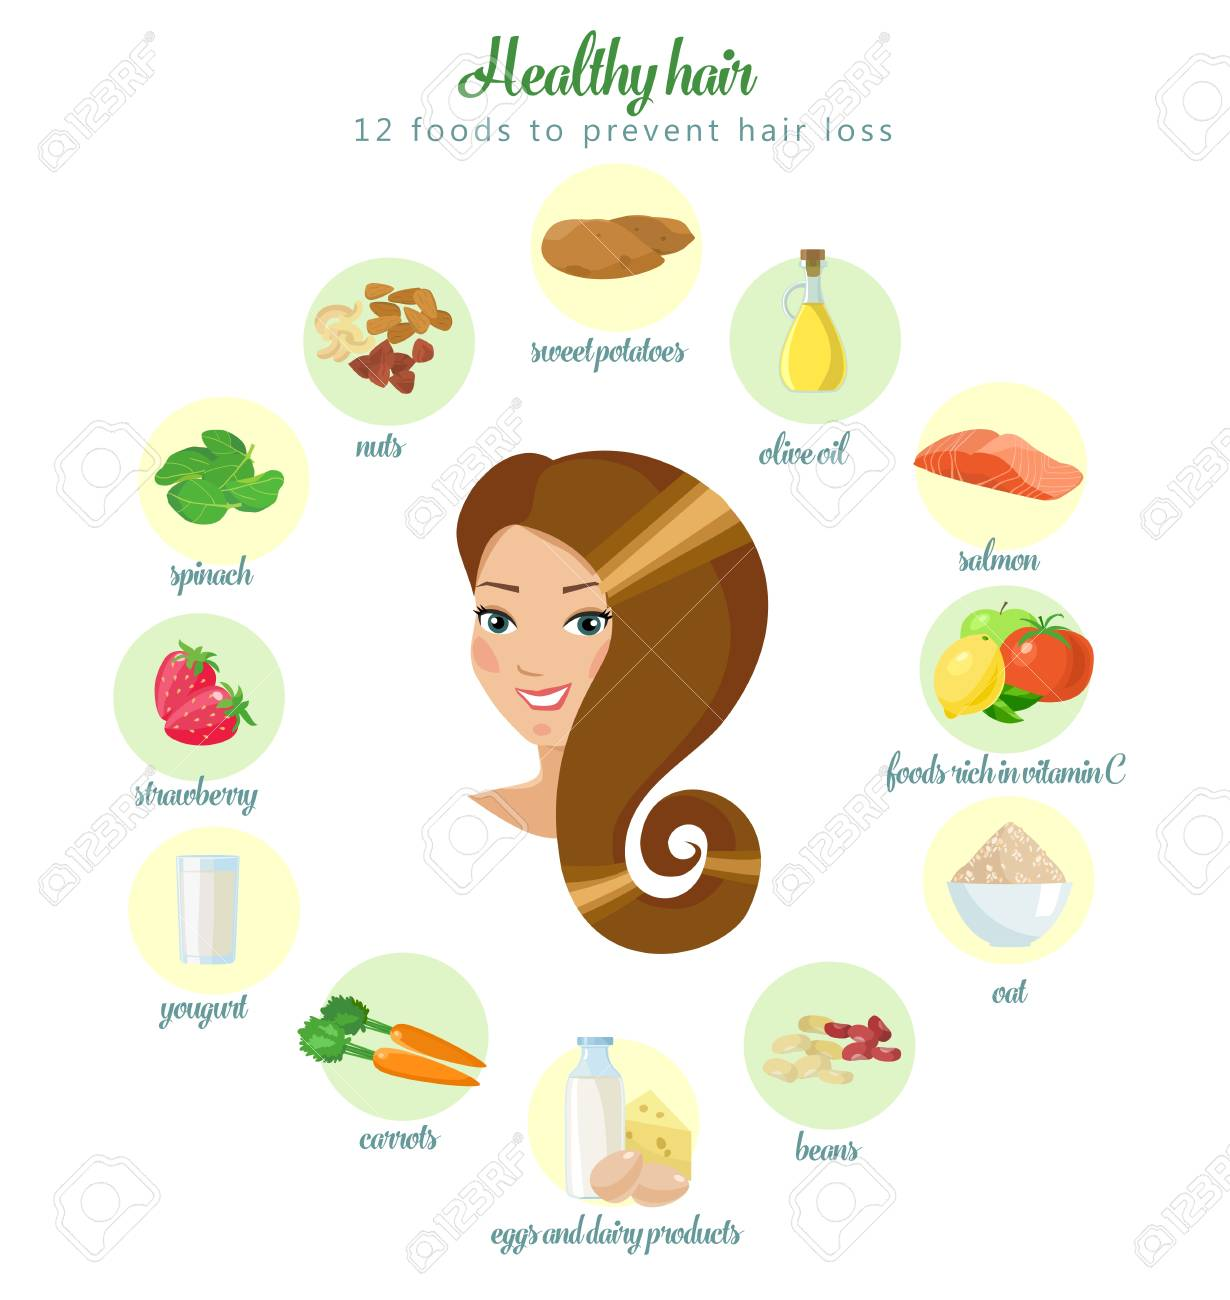 Products for your healthy hair. - 72636822